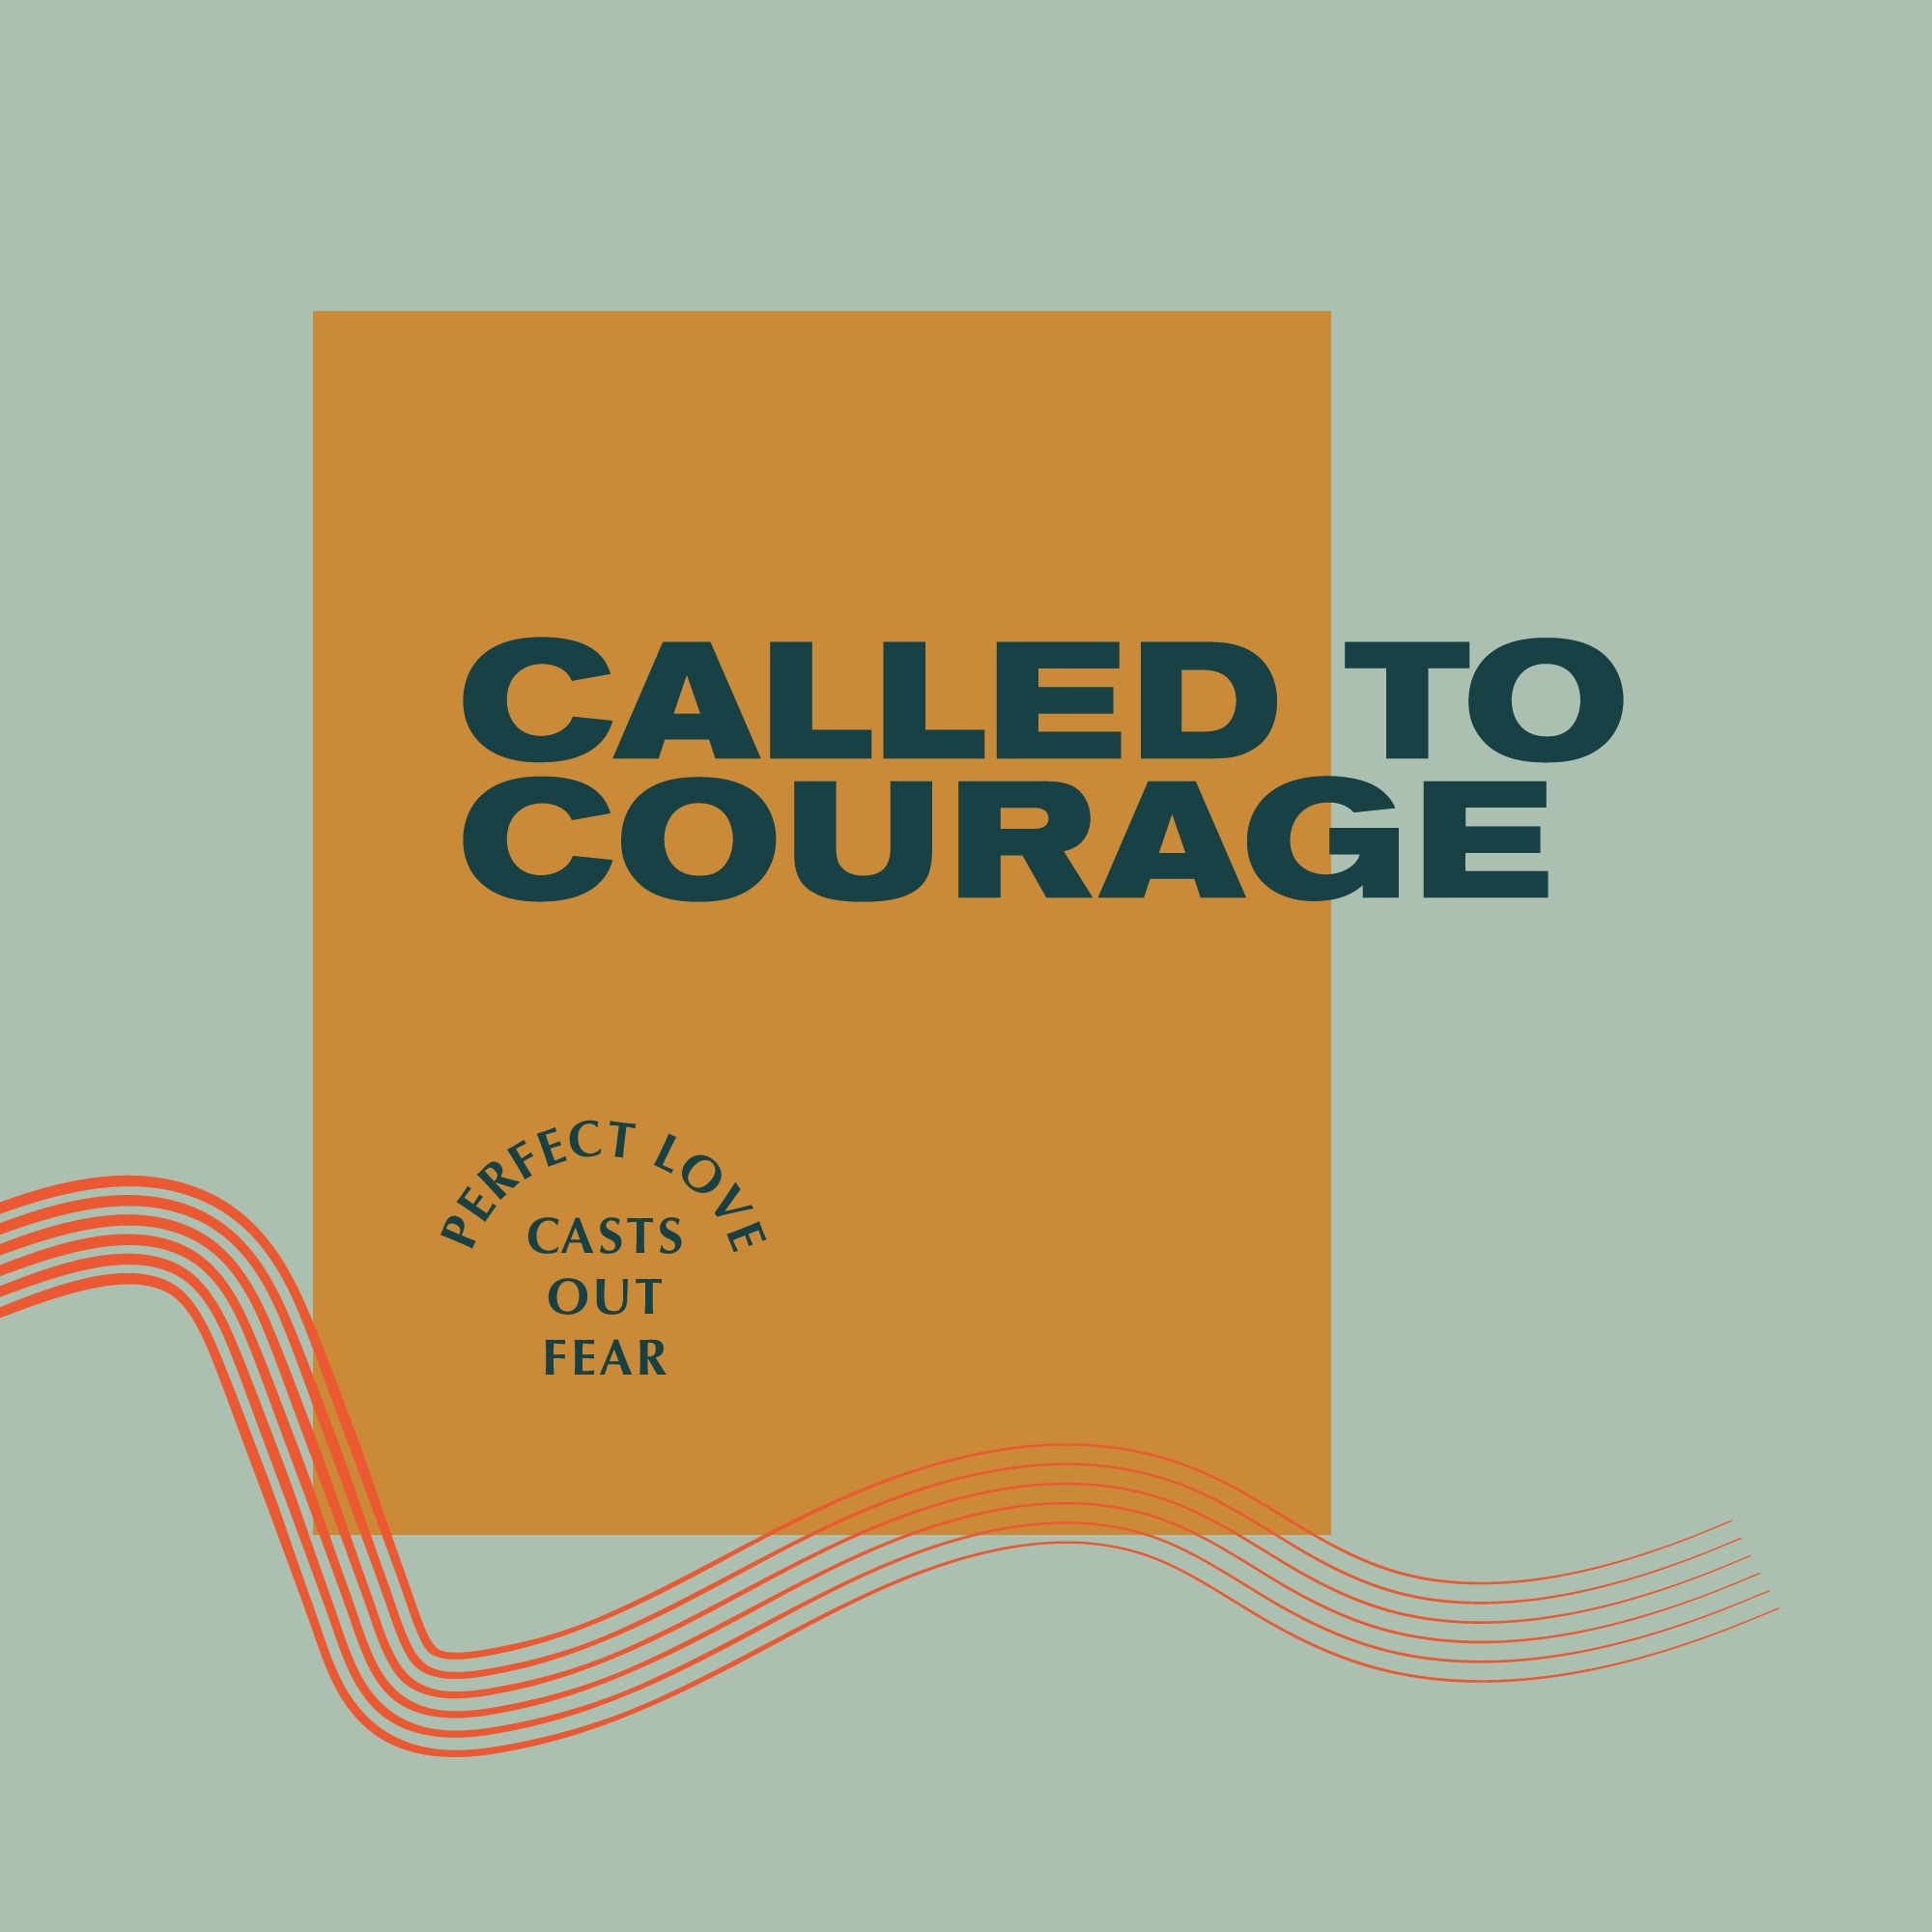 Called to Courage 1x1 (PNG)